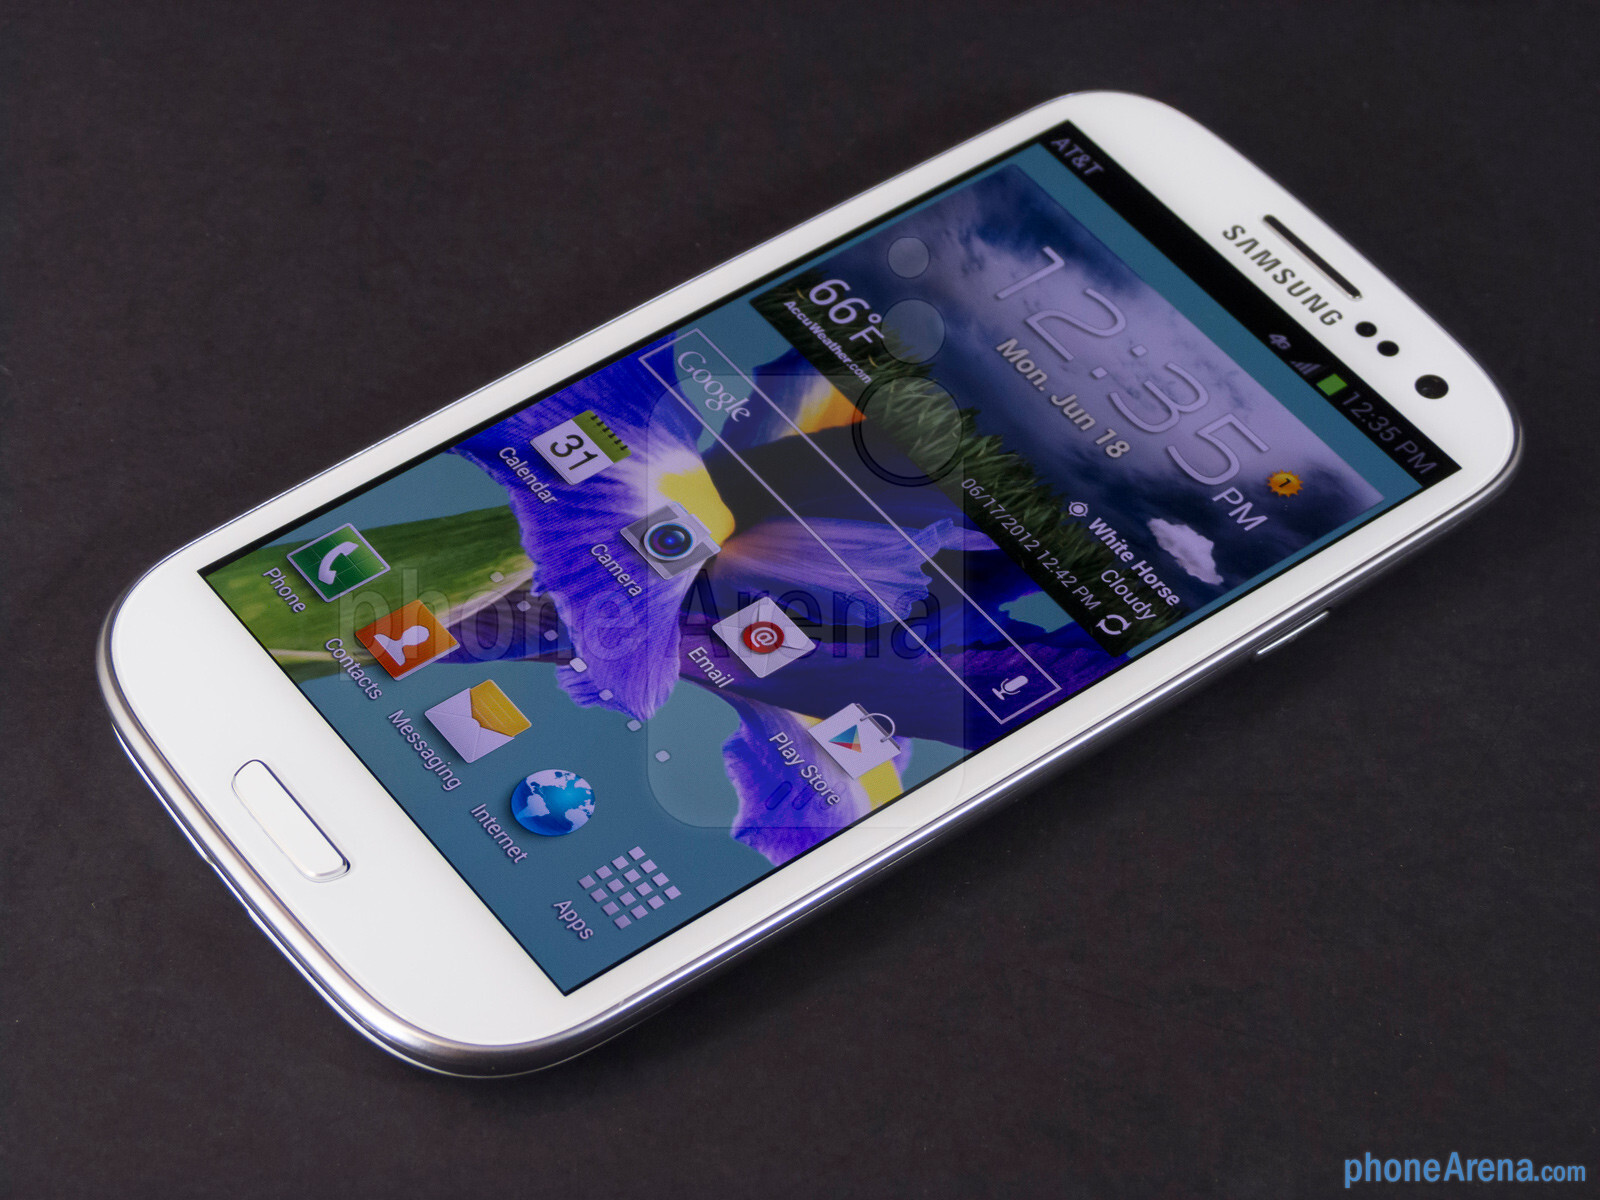 Samsung Galaxy S III Review (AT&T, Verizon, T-Mobile